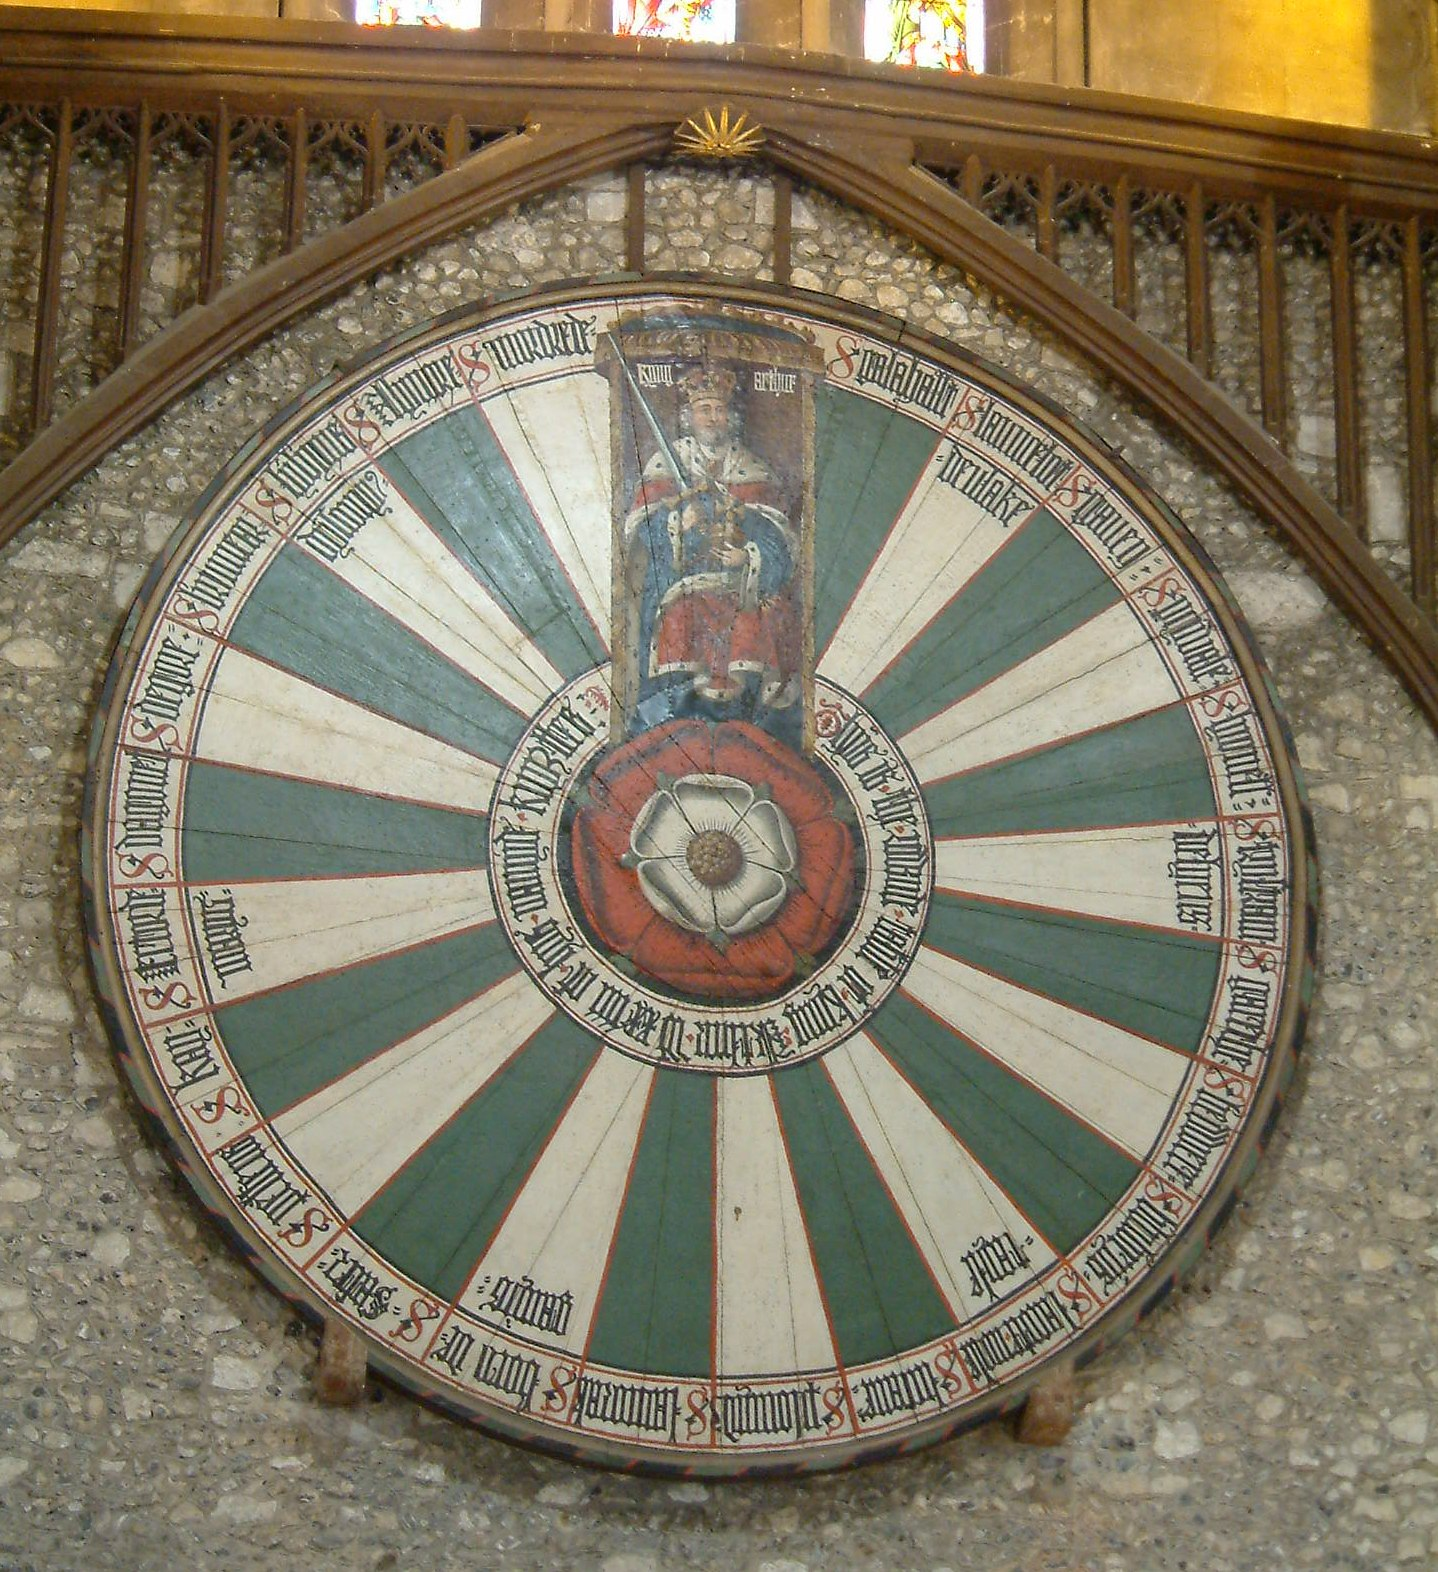 The Winchester Round Table